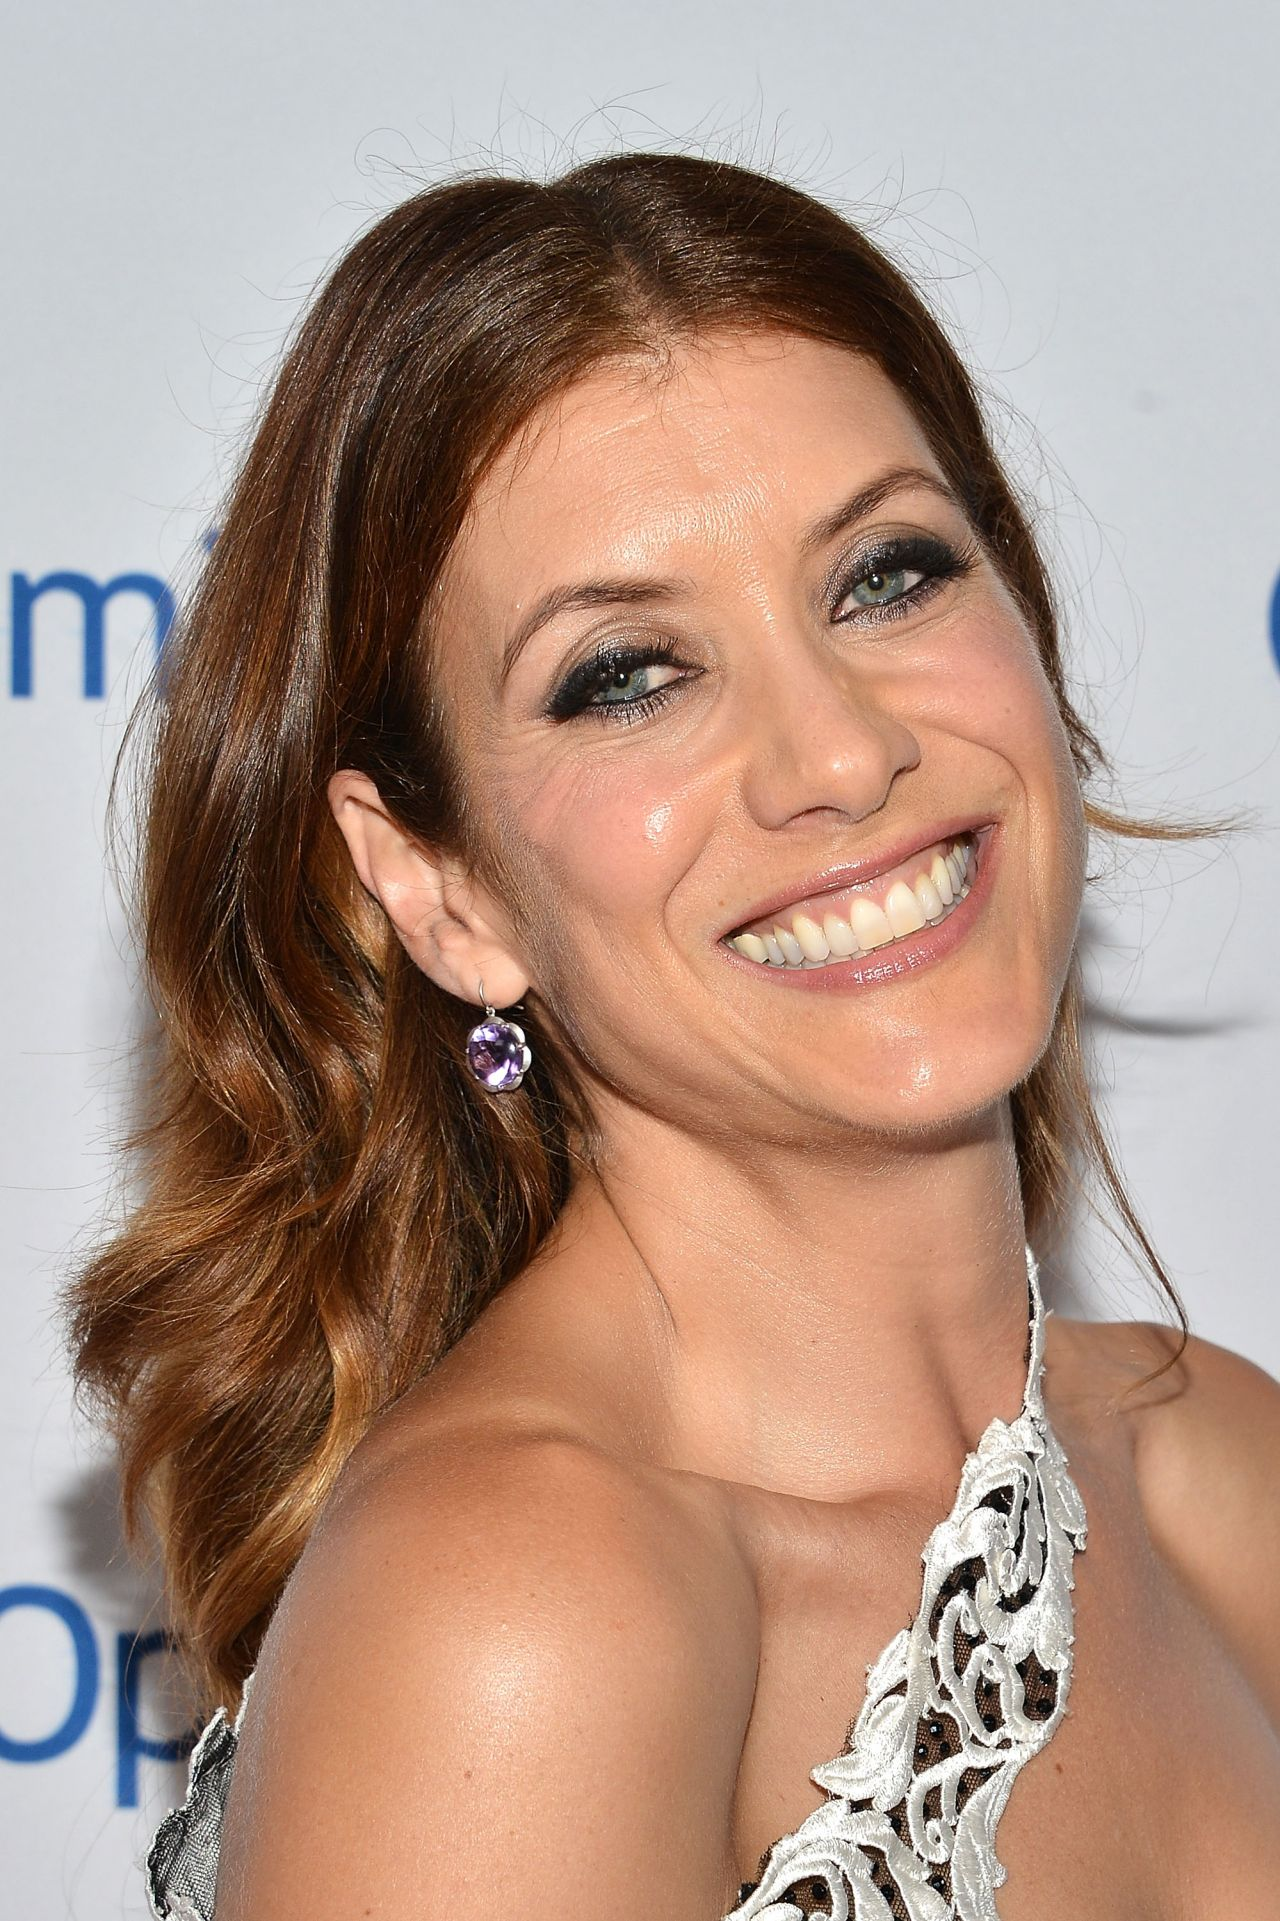 Kate Walsh Operation Smile 2014 Smile Gala In Beverly Hills